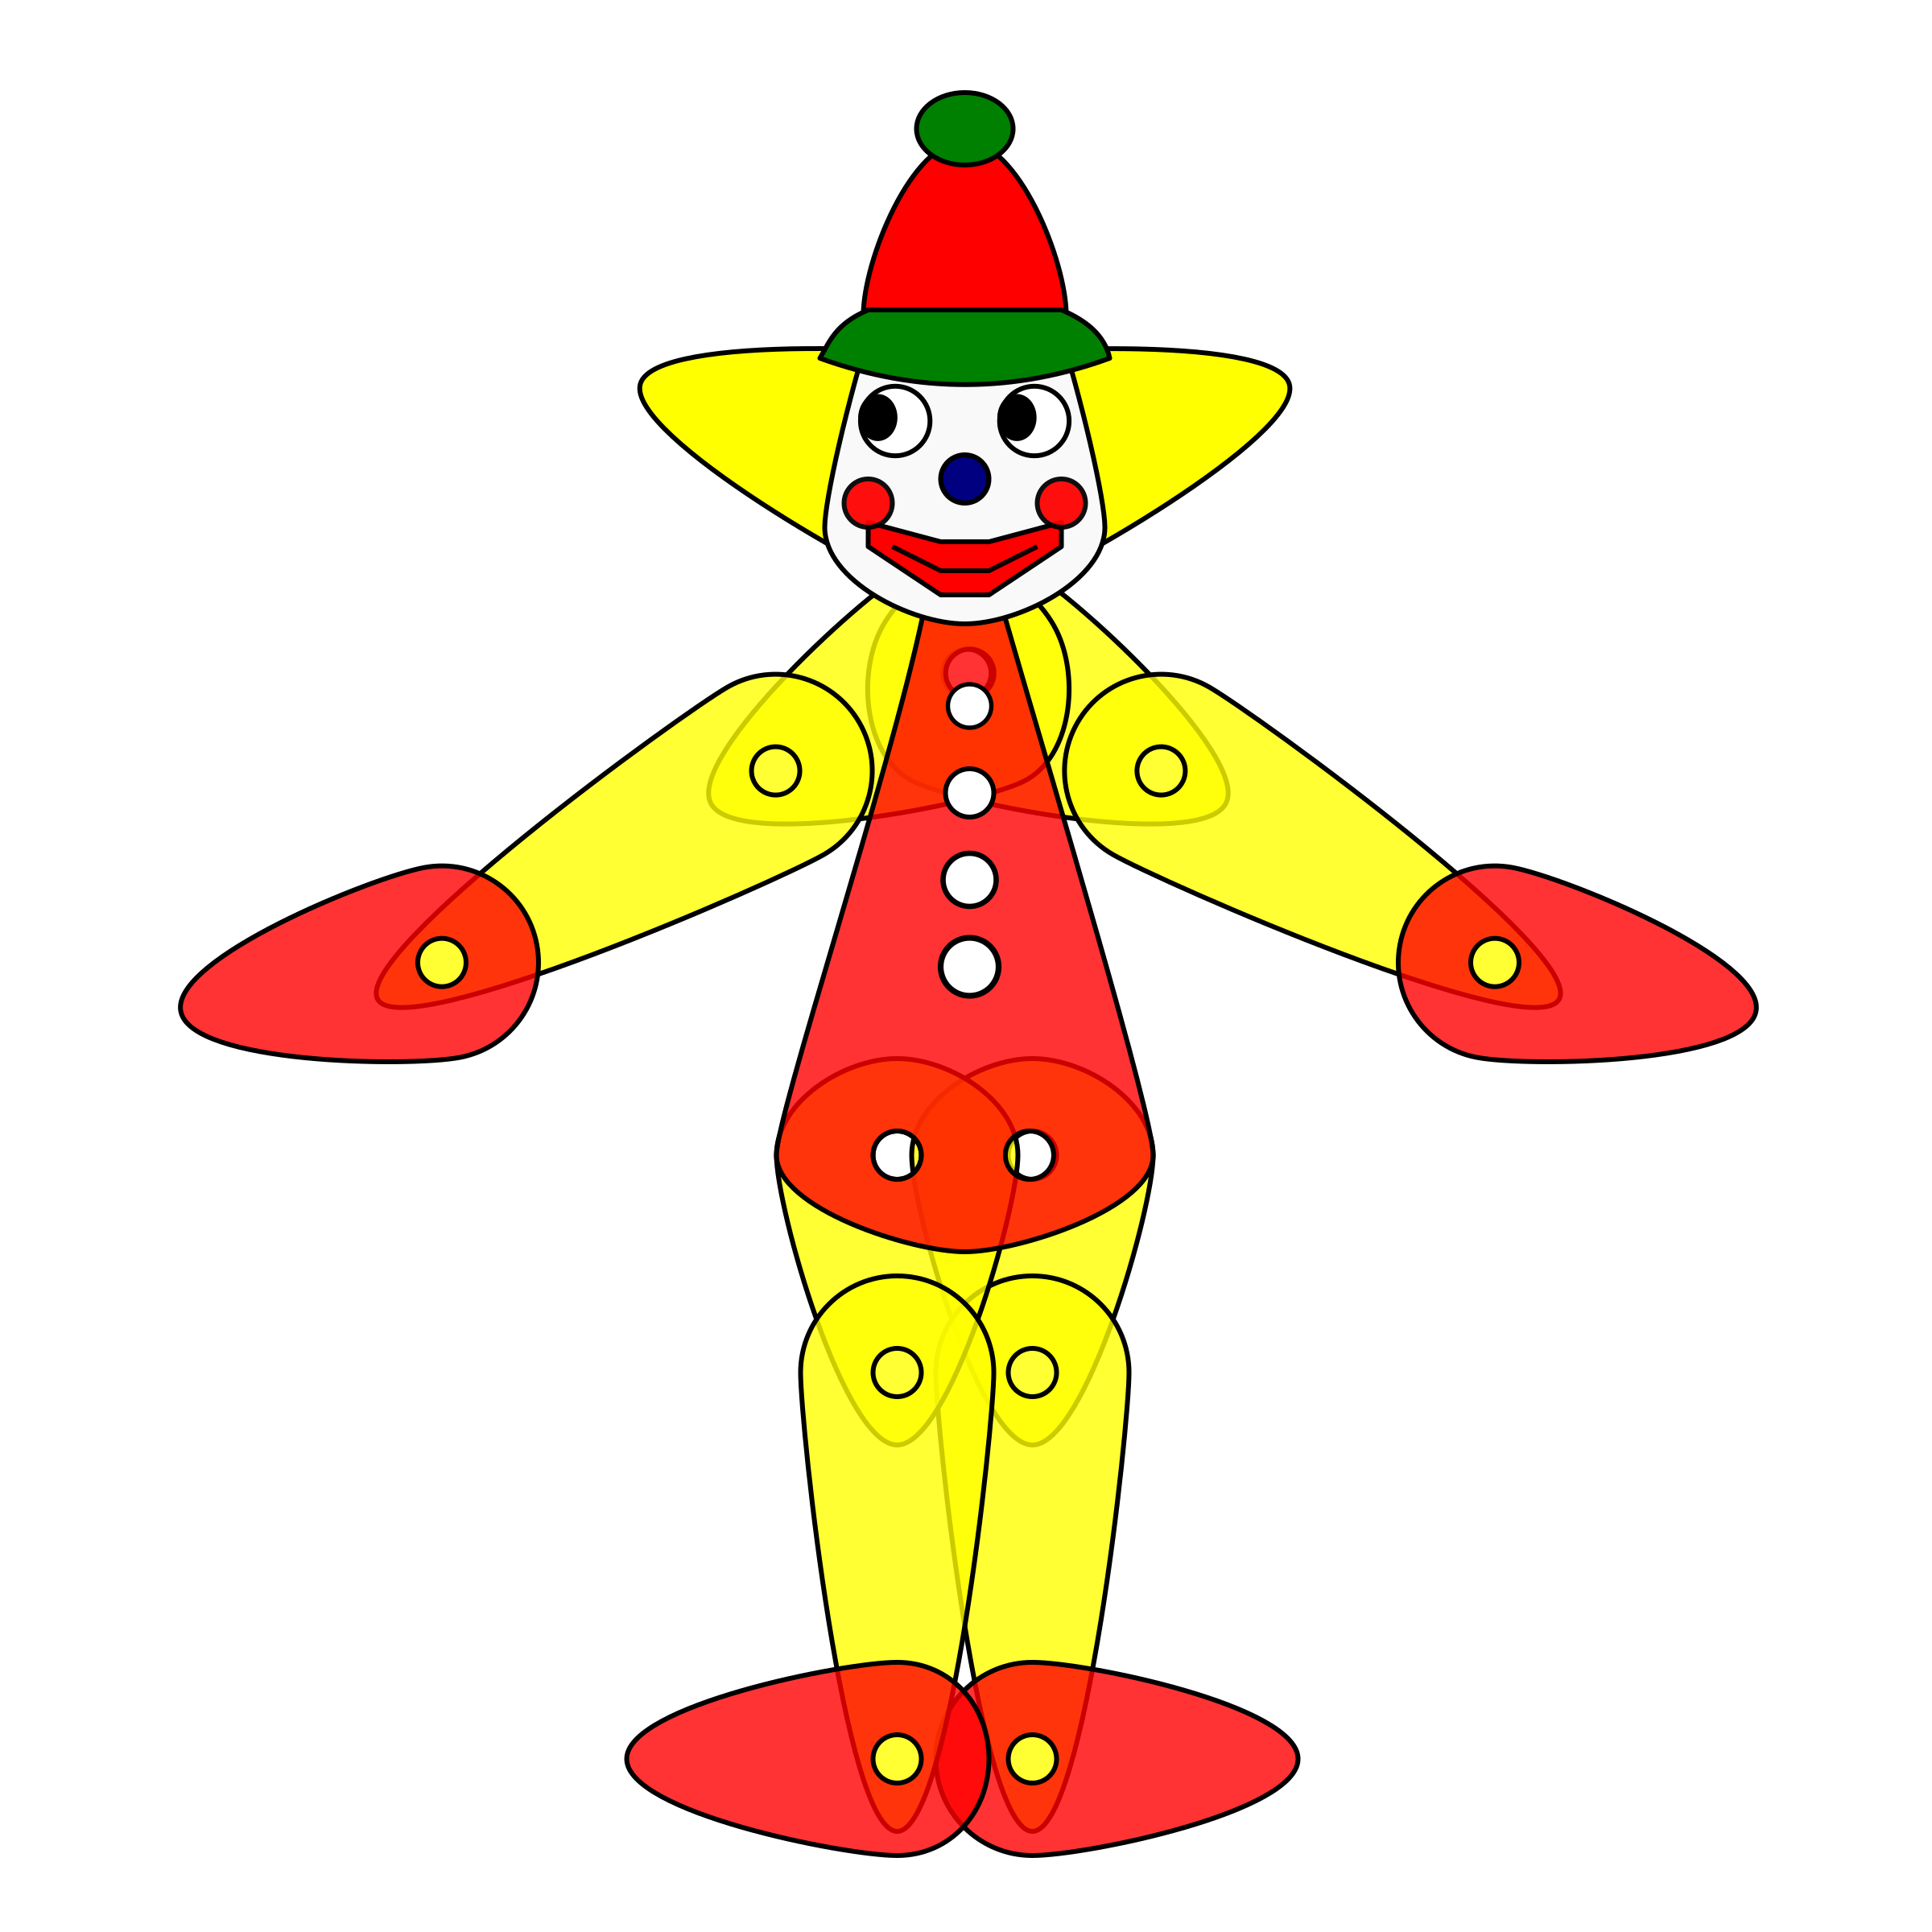 Toy Clown Puppet Animation by aukipa